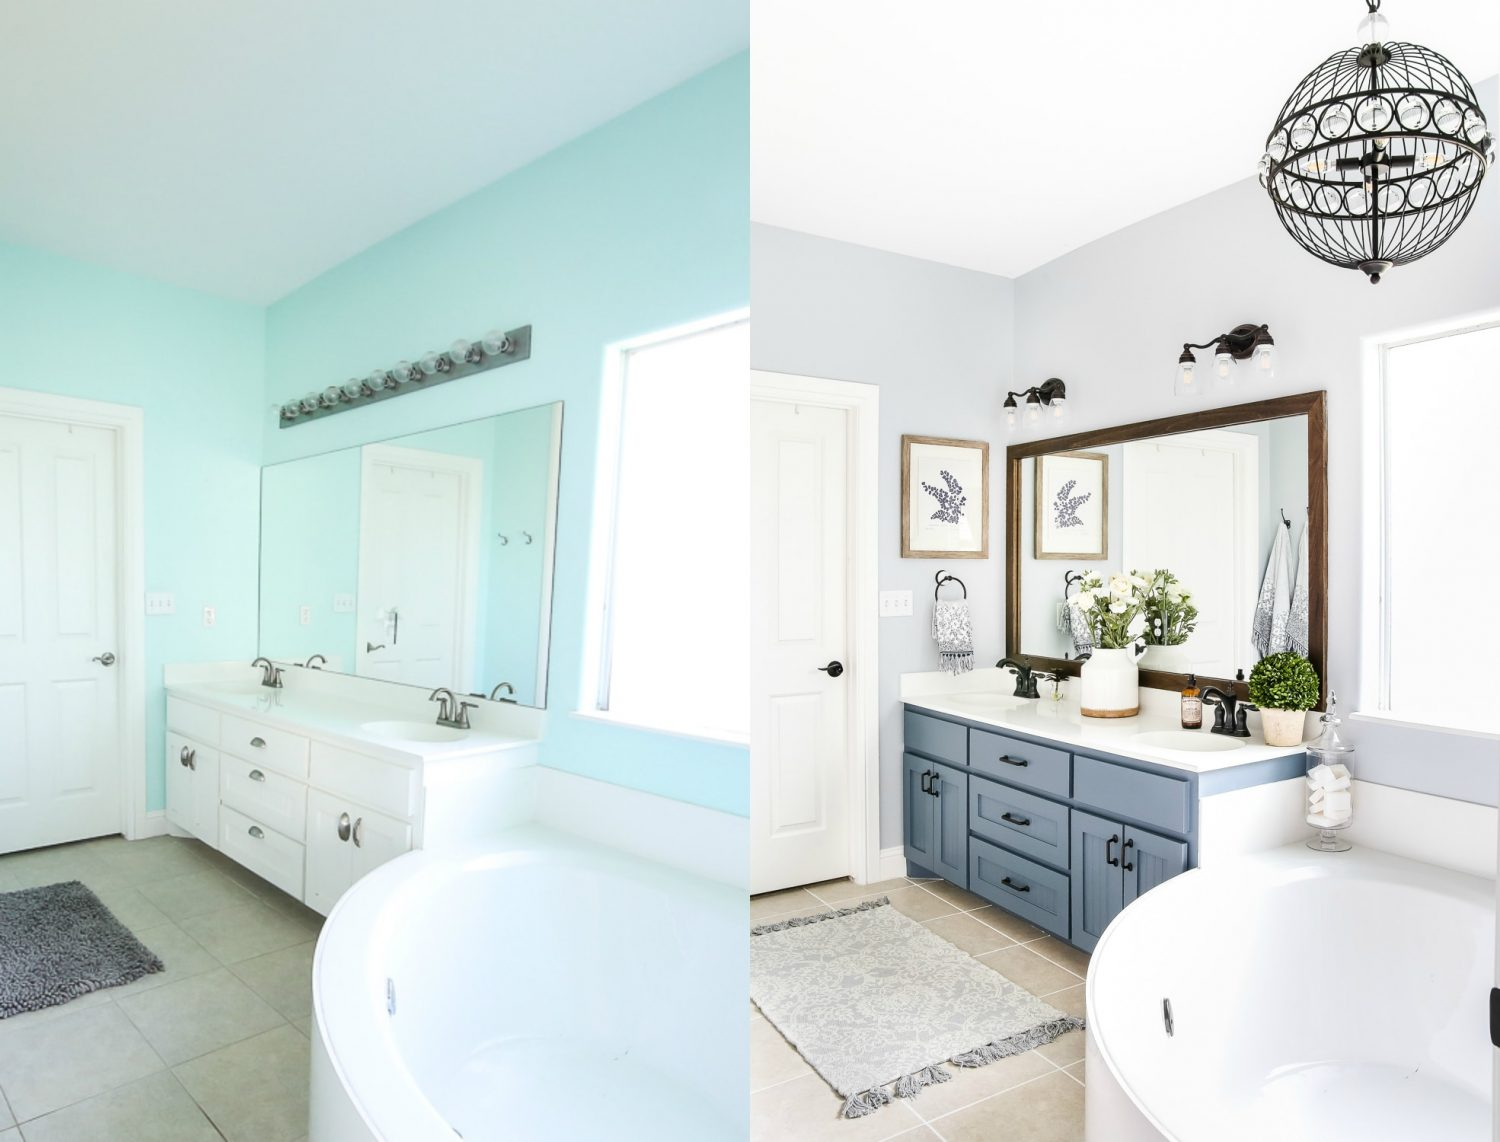 Before and after master bathroom renovation- Maison de Pax